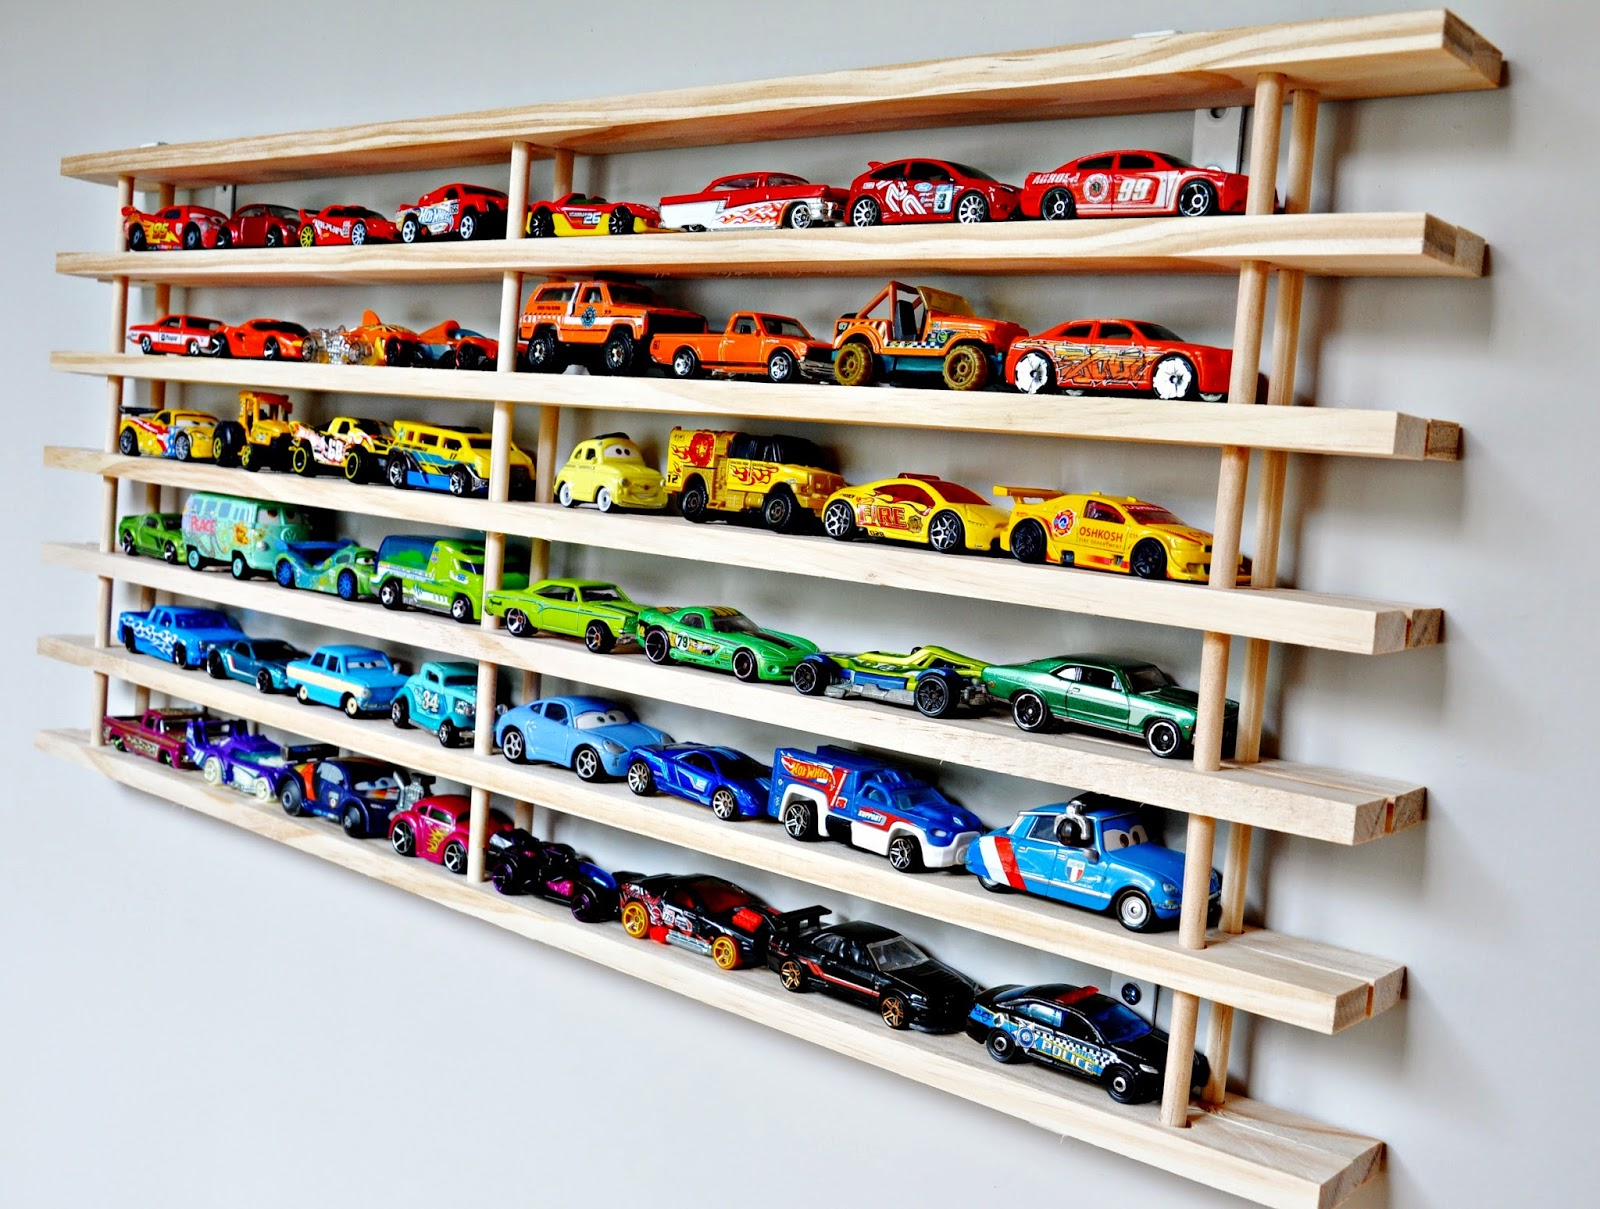 Big Toy Car Holder : Best toy storage ideas that kids will love in